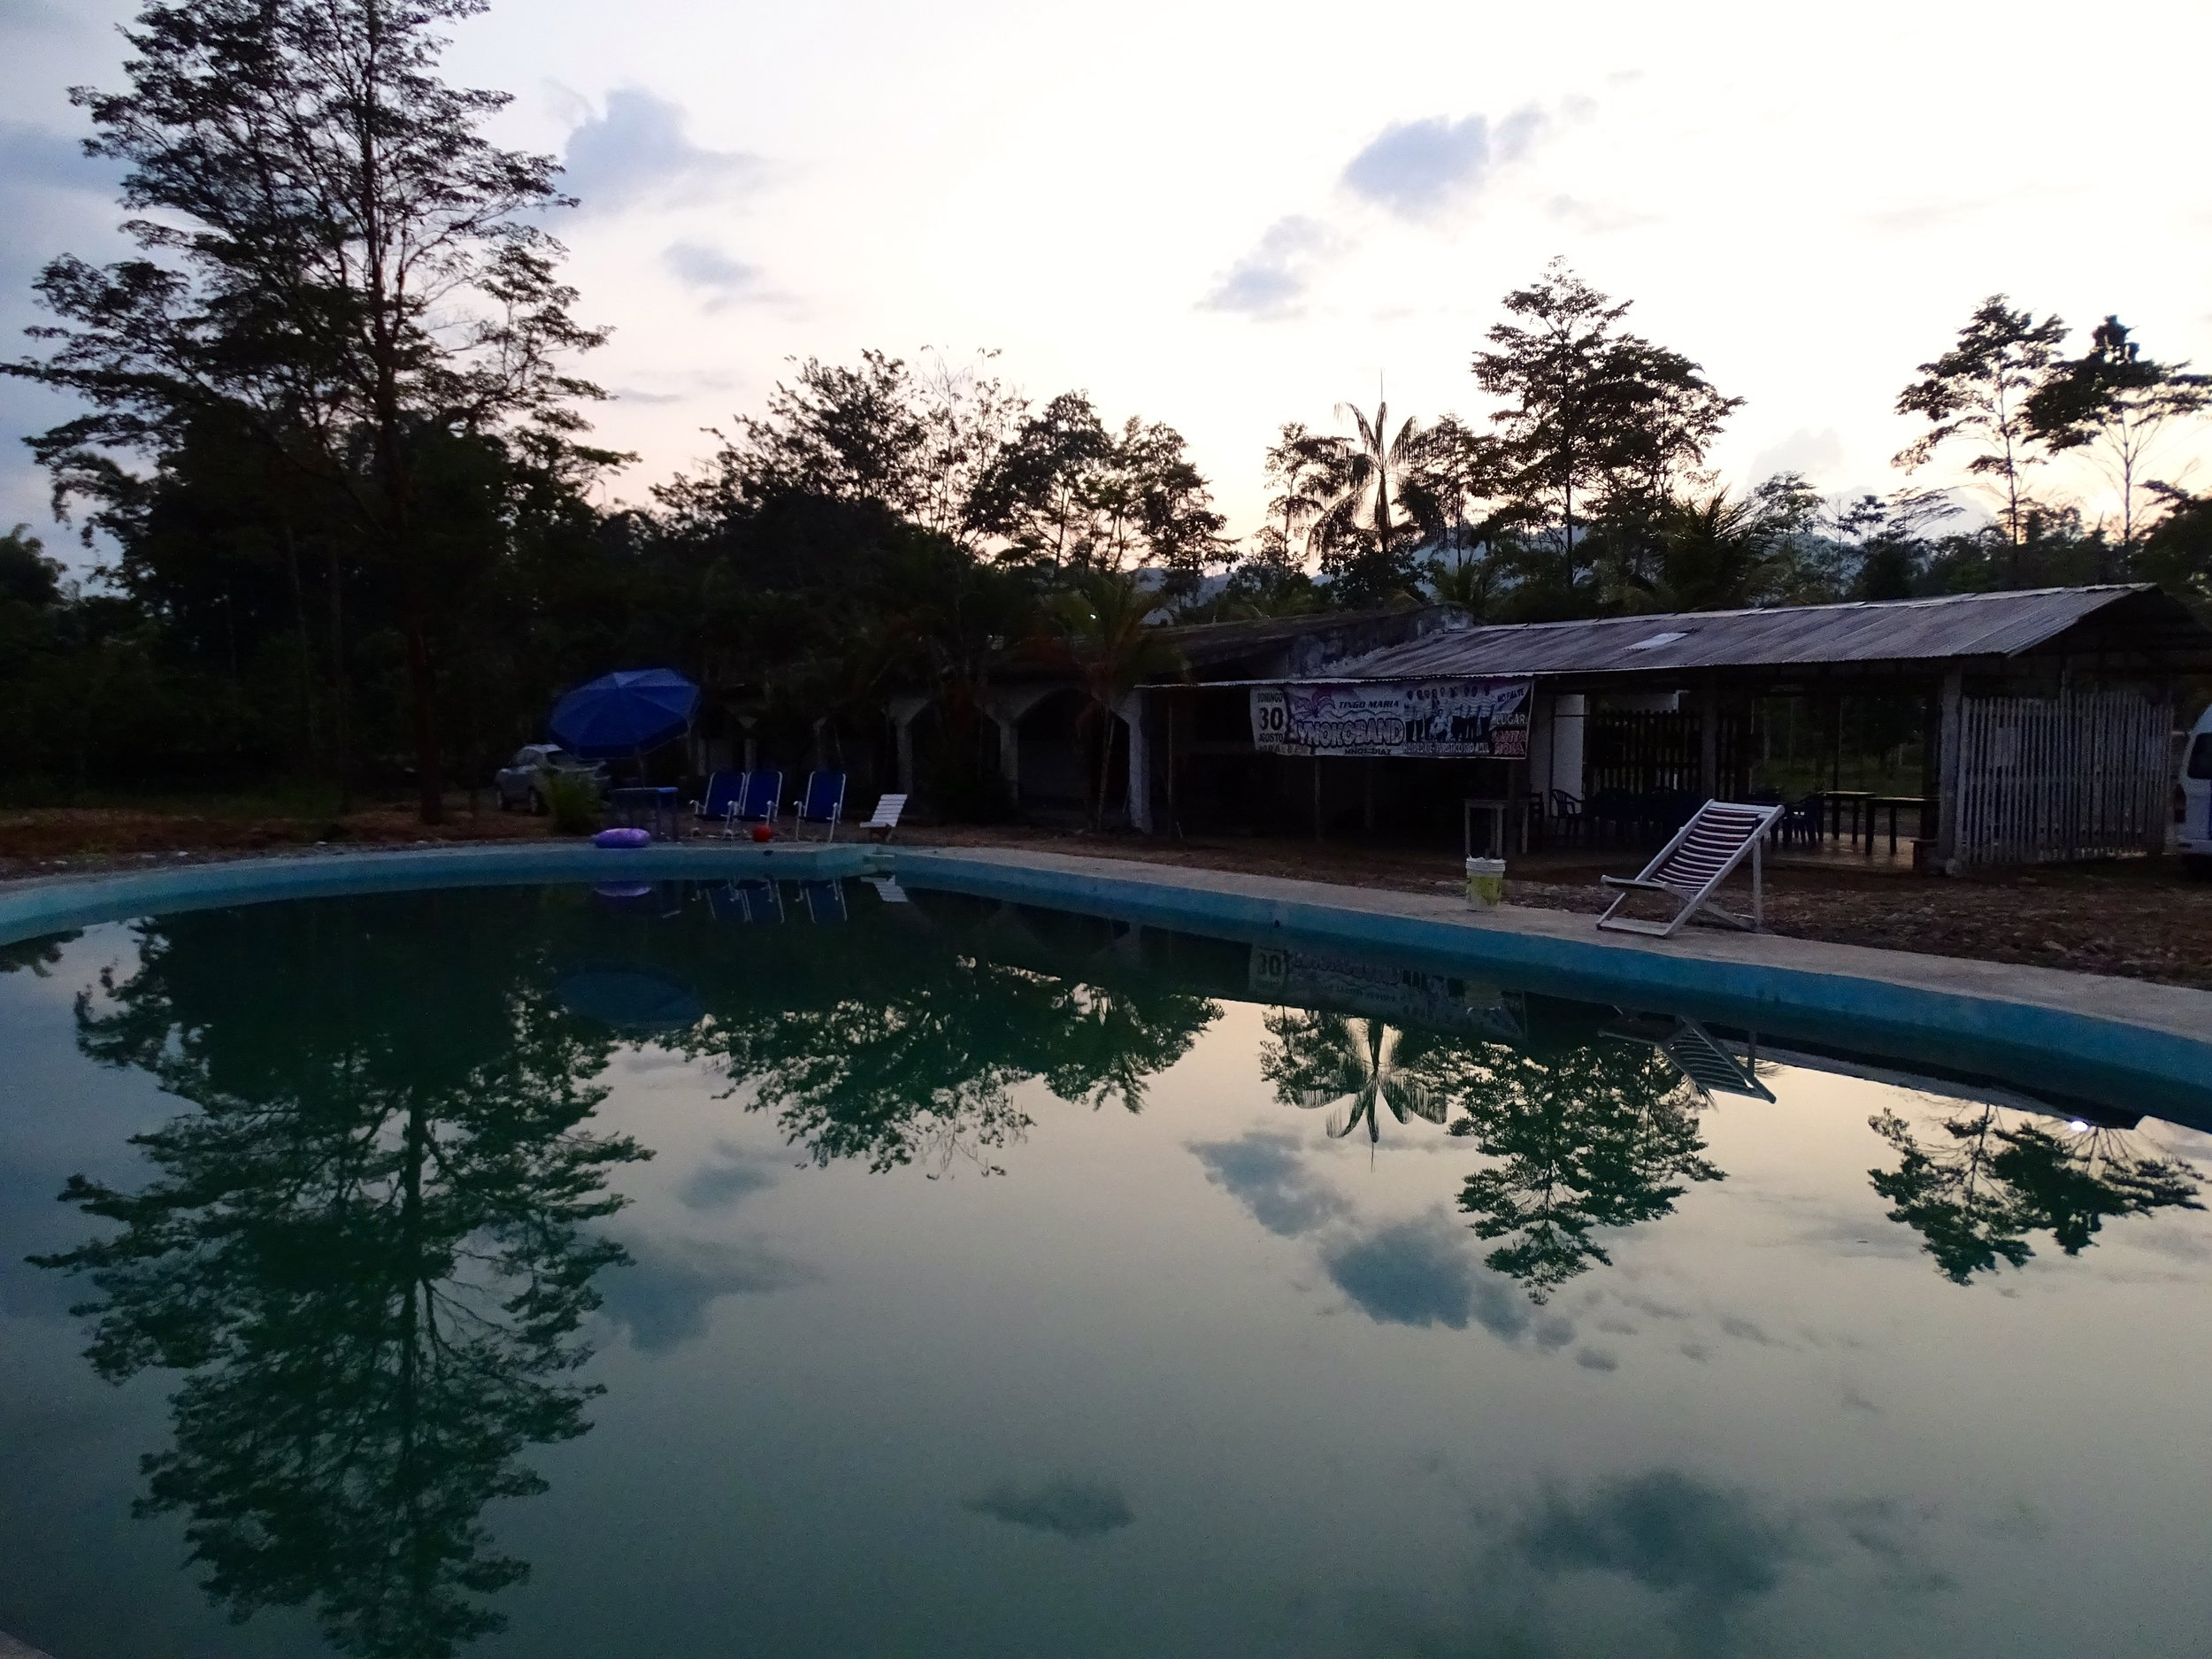 The swimming pool was a bit rough around the edges but it felt great when we arrived in the hot afternoon. This photo was taken at sunrise.